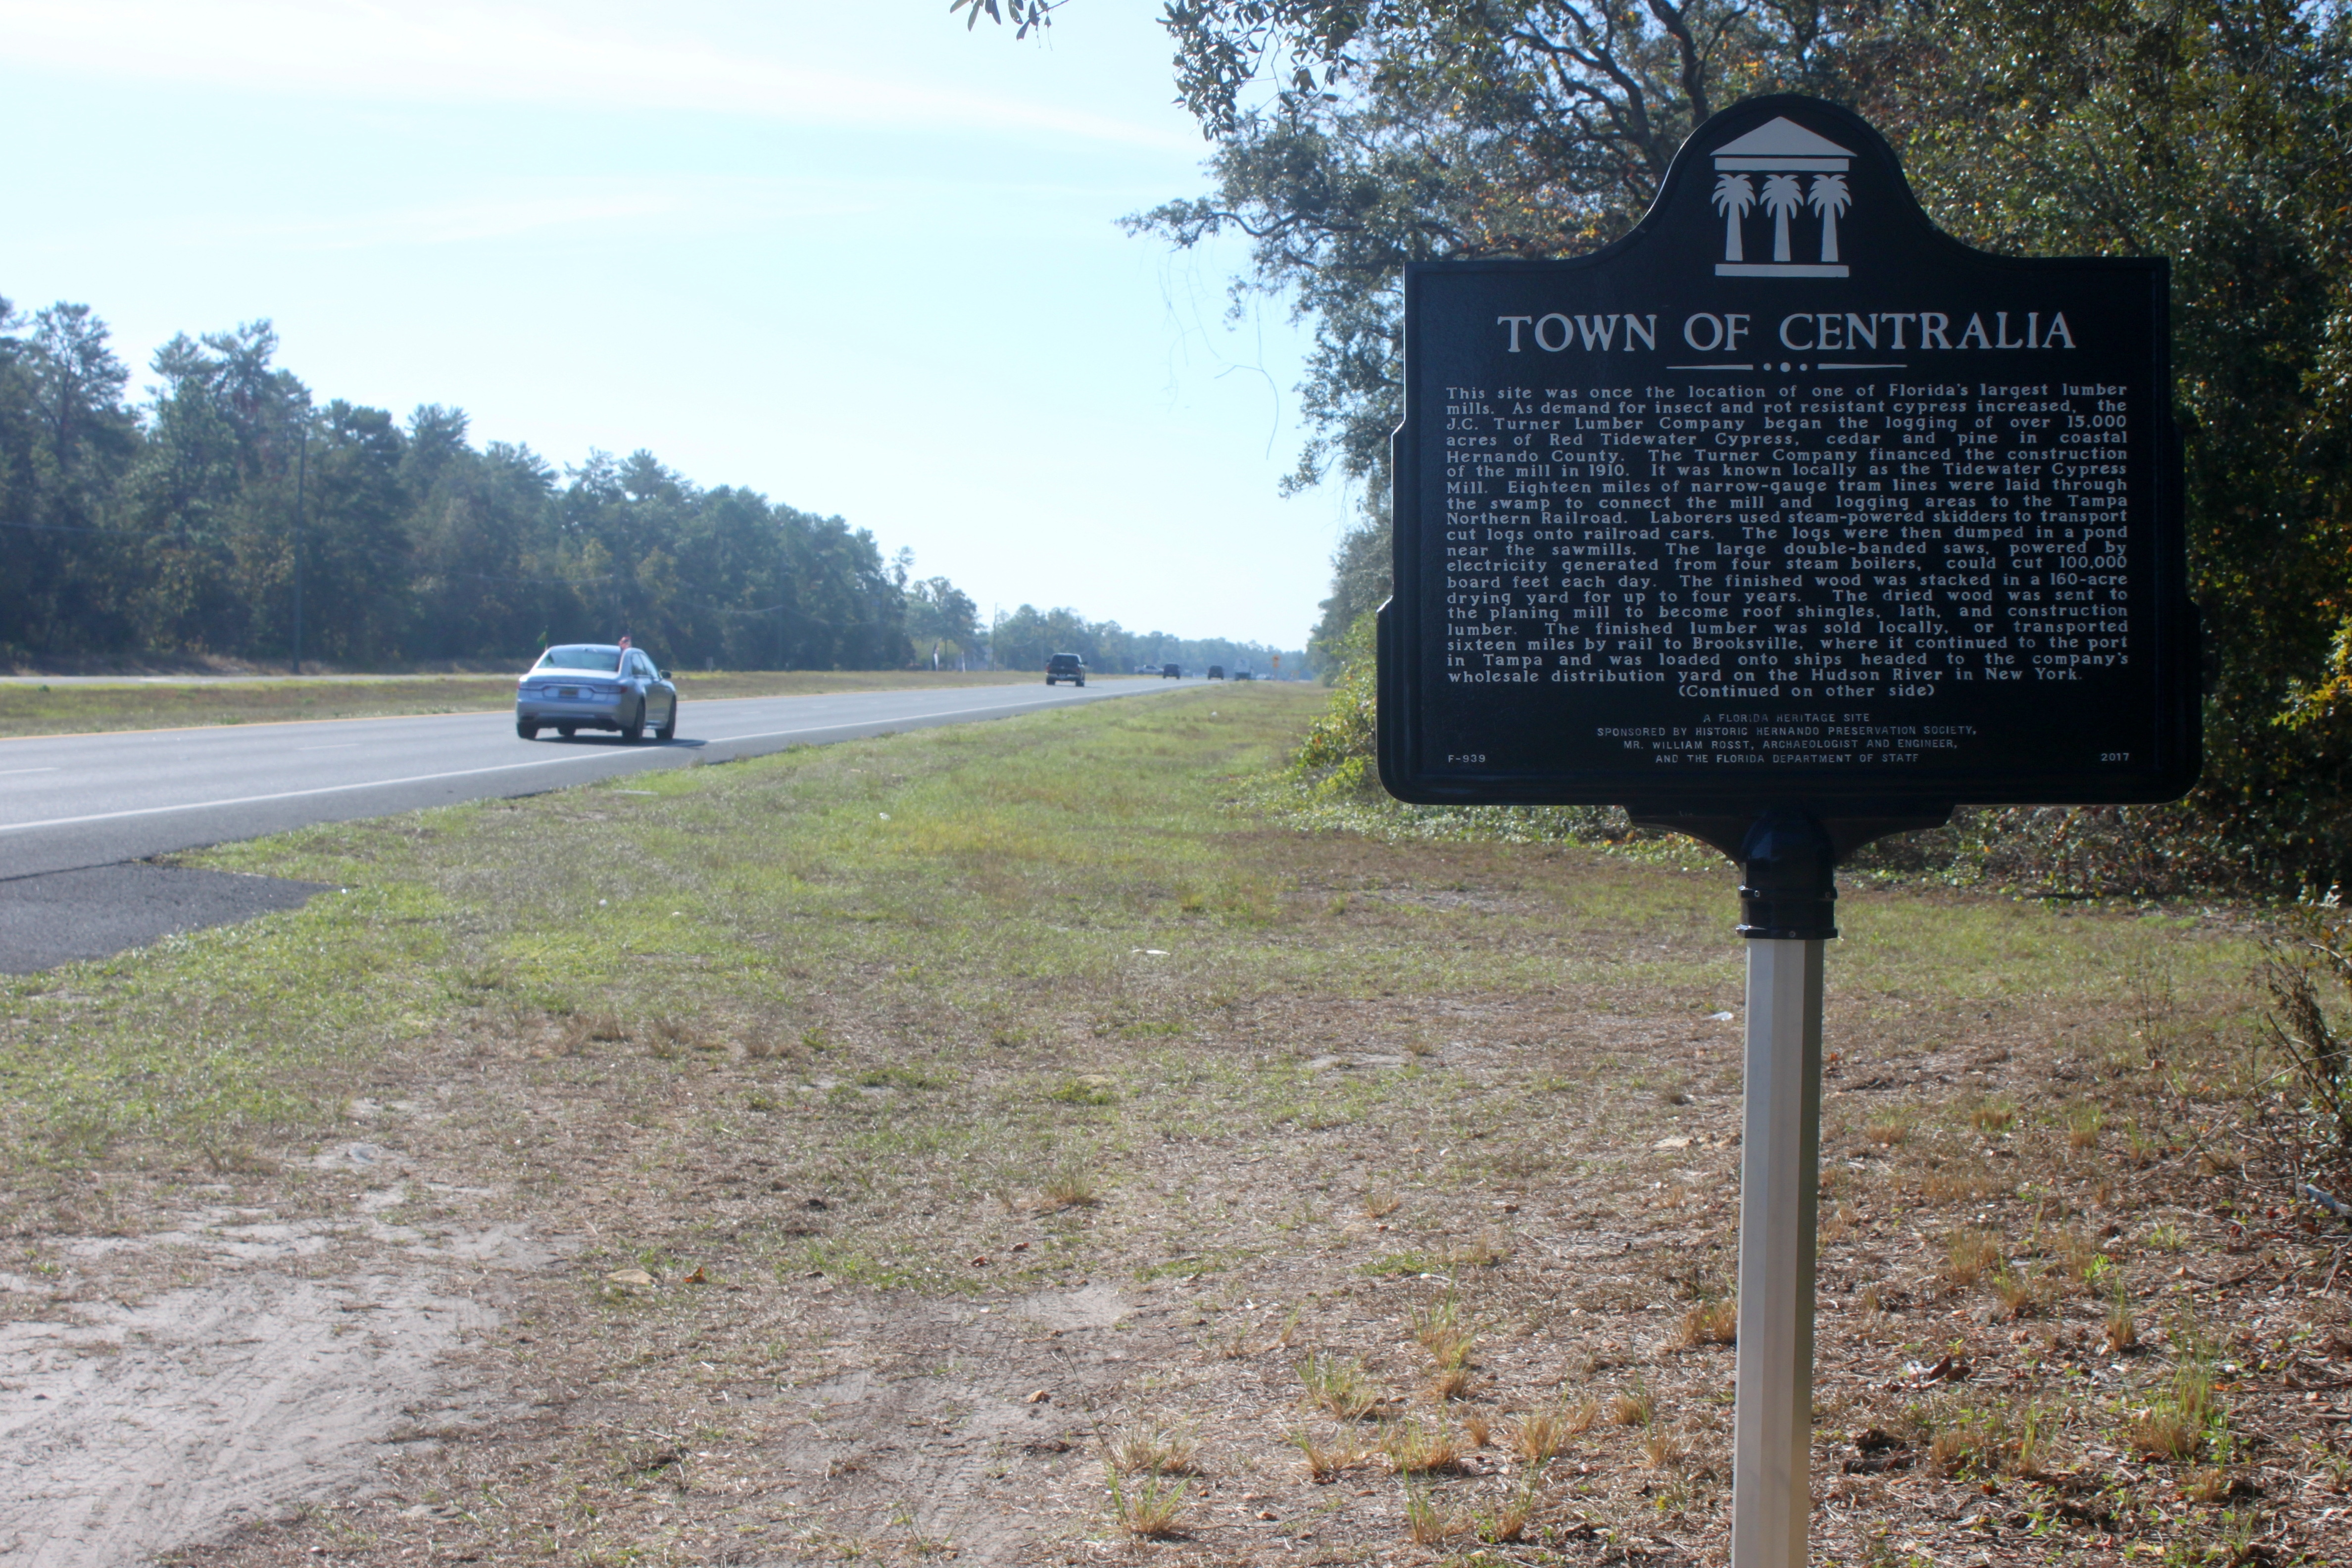 Town of Centralia Marker looking south on US 19